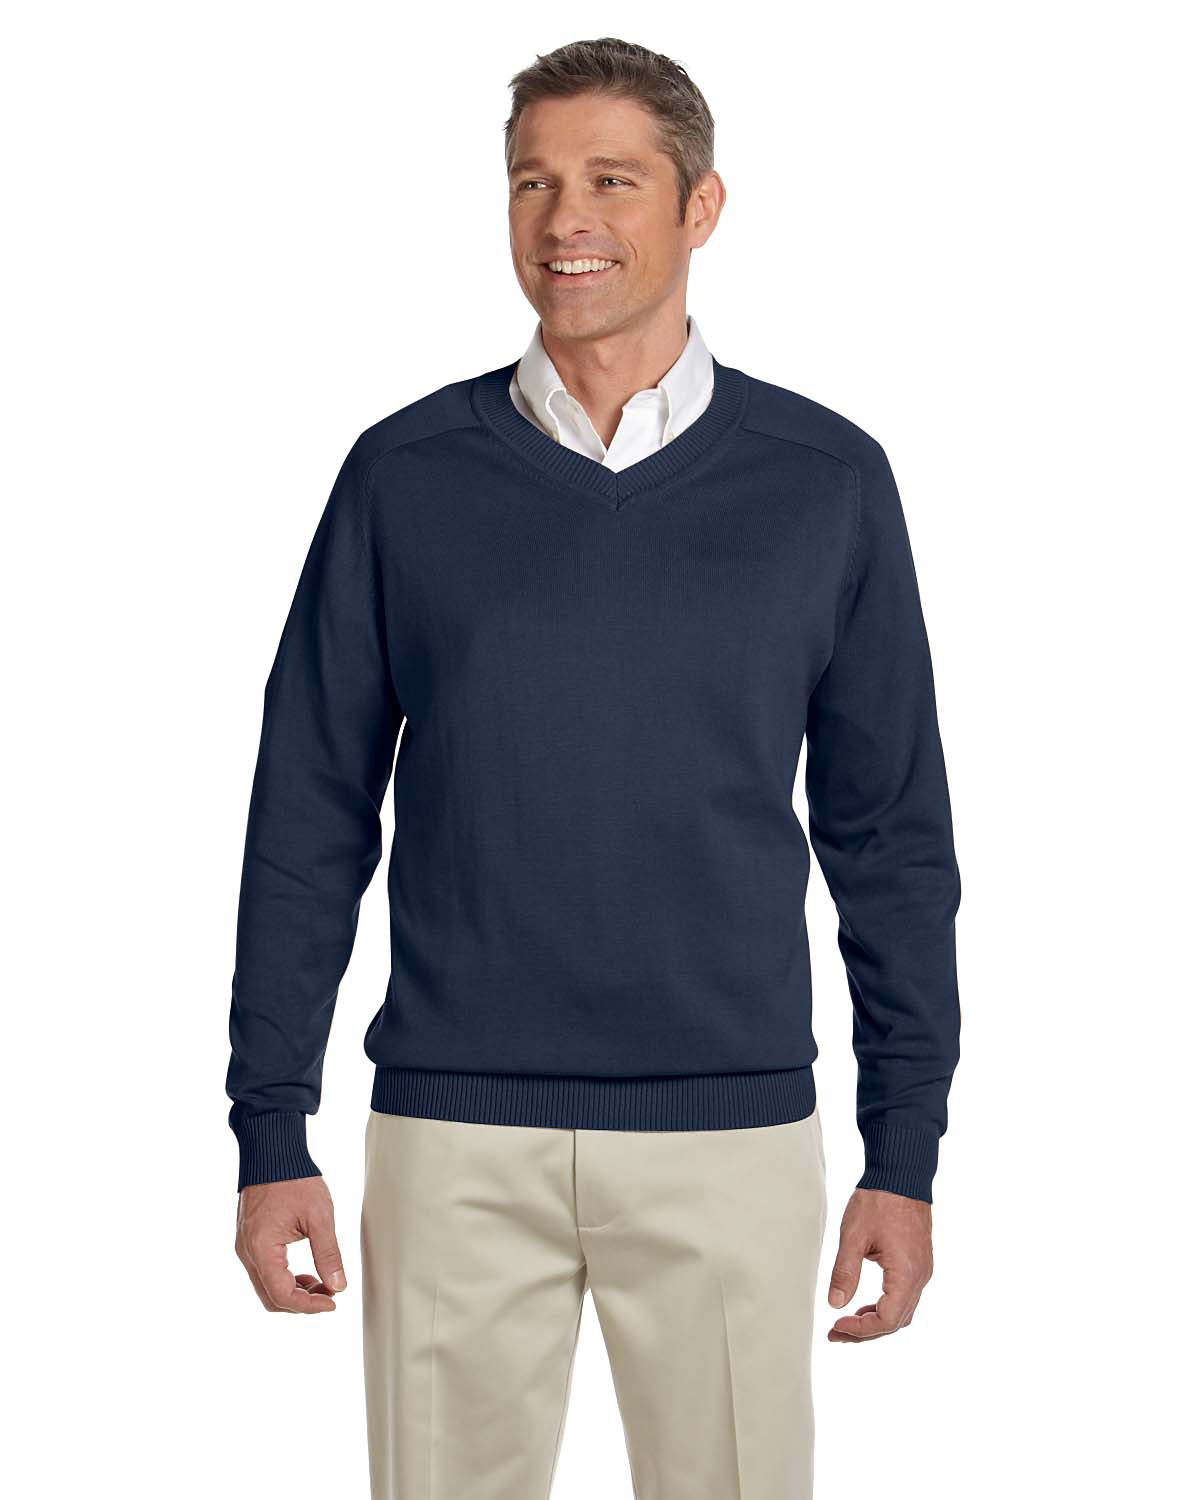 Devon & Jones - D475 Men's V-Neck Sweater, Pensacola, Embroidery, Screen Printing, Logo Masters International